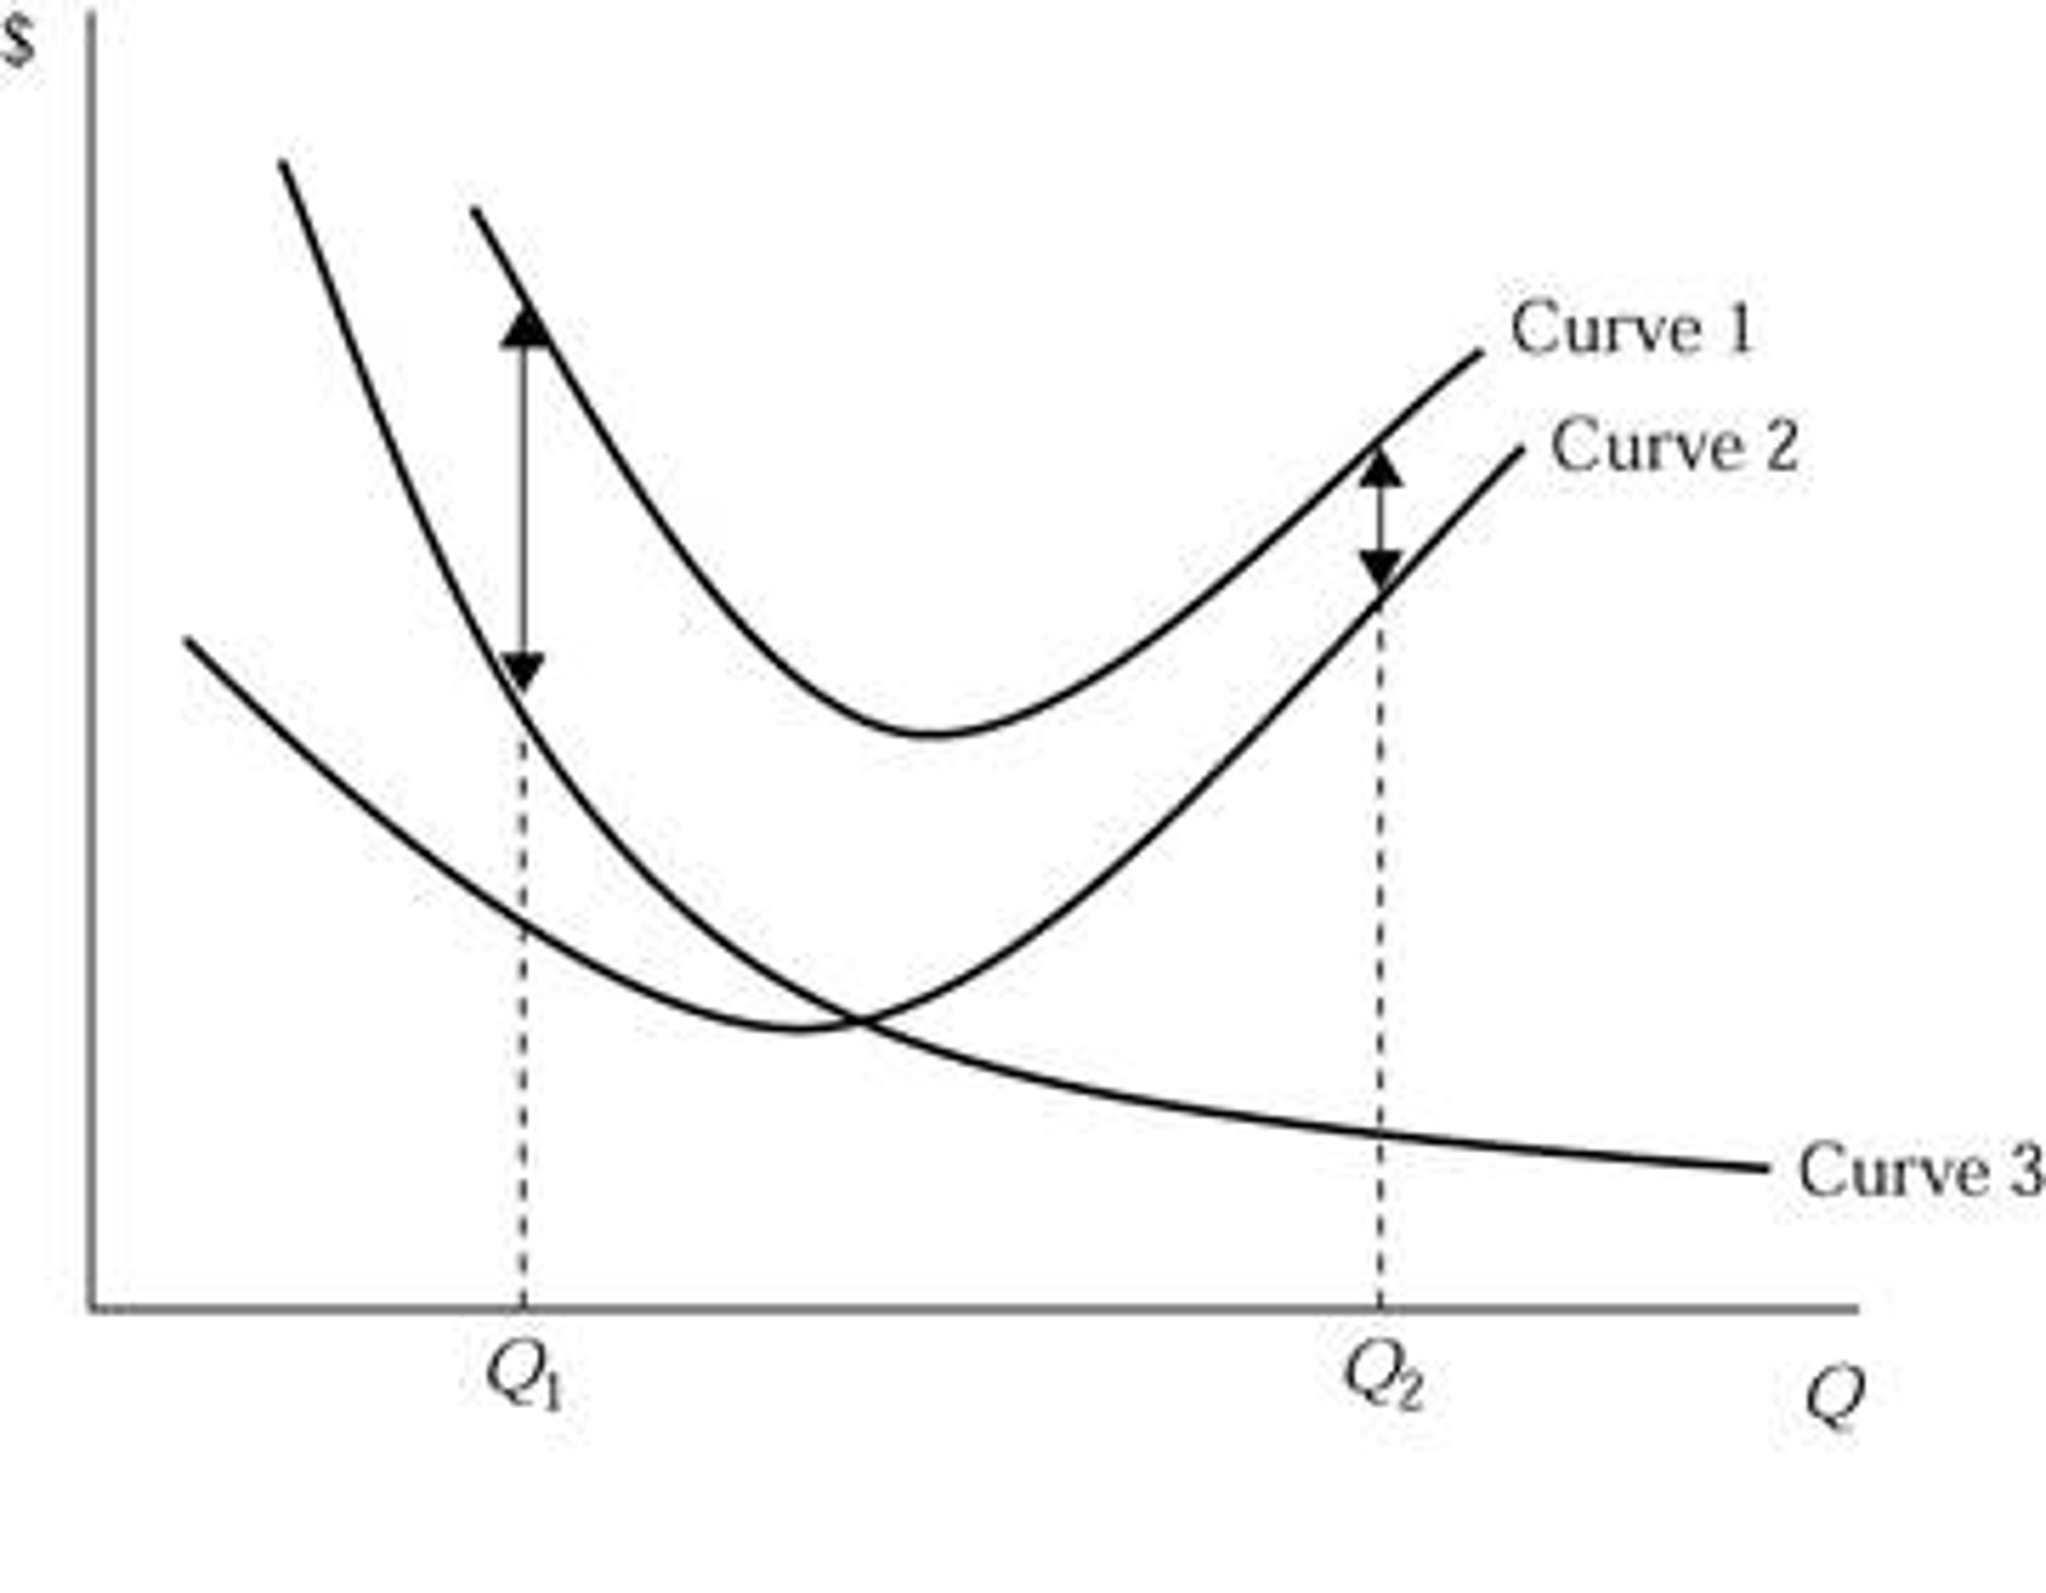 average cost curve